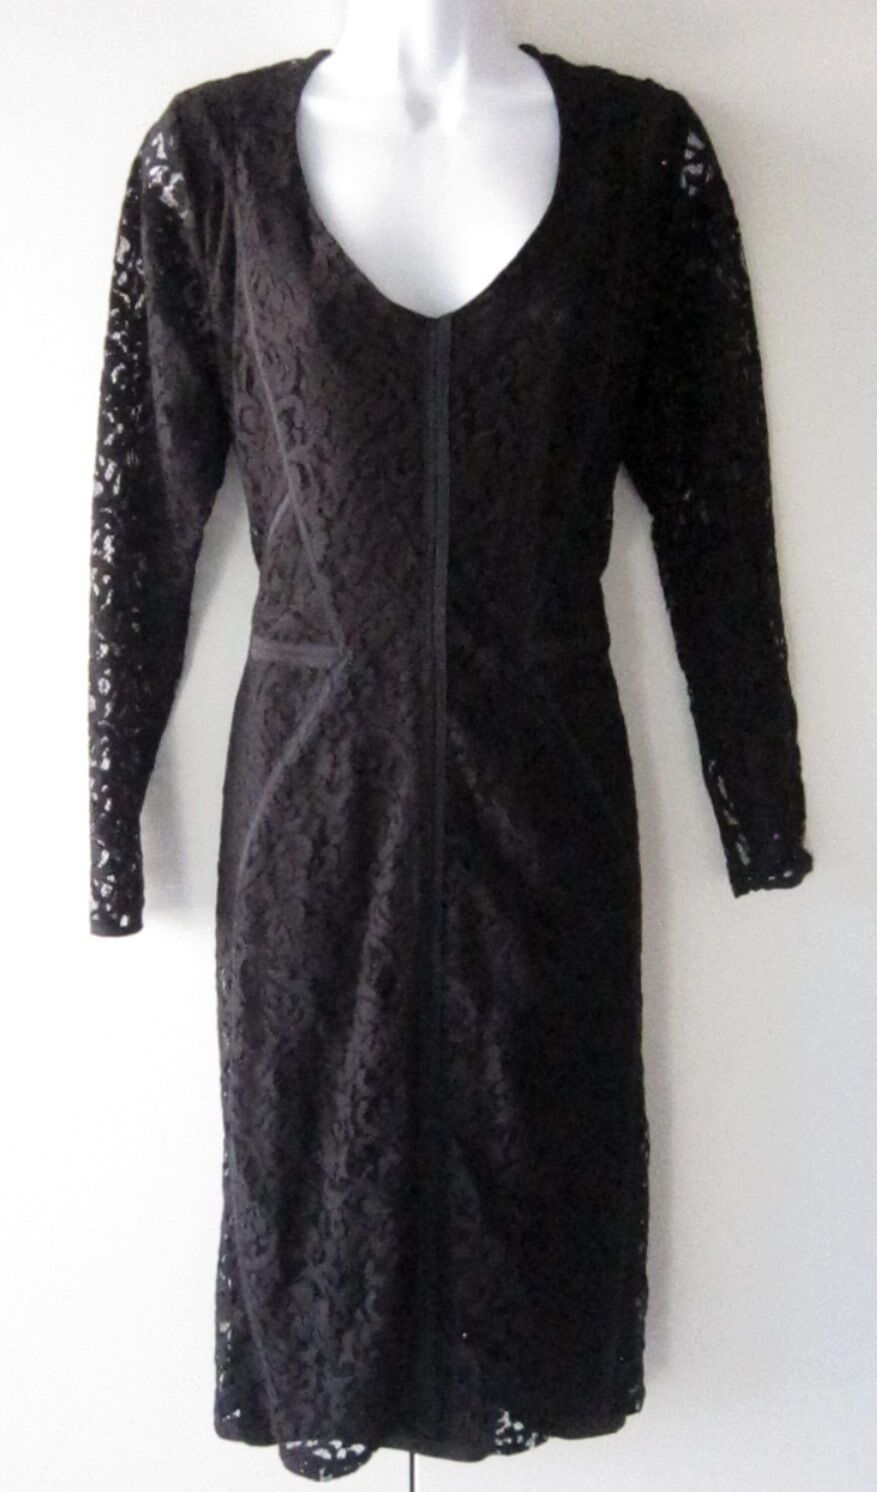 ANN TAYLOR Midnight Lace Dress Size 12  Brand new with tags attached